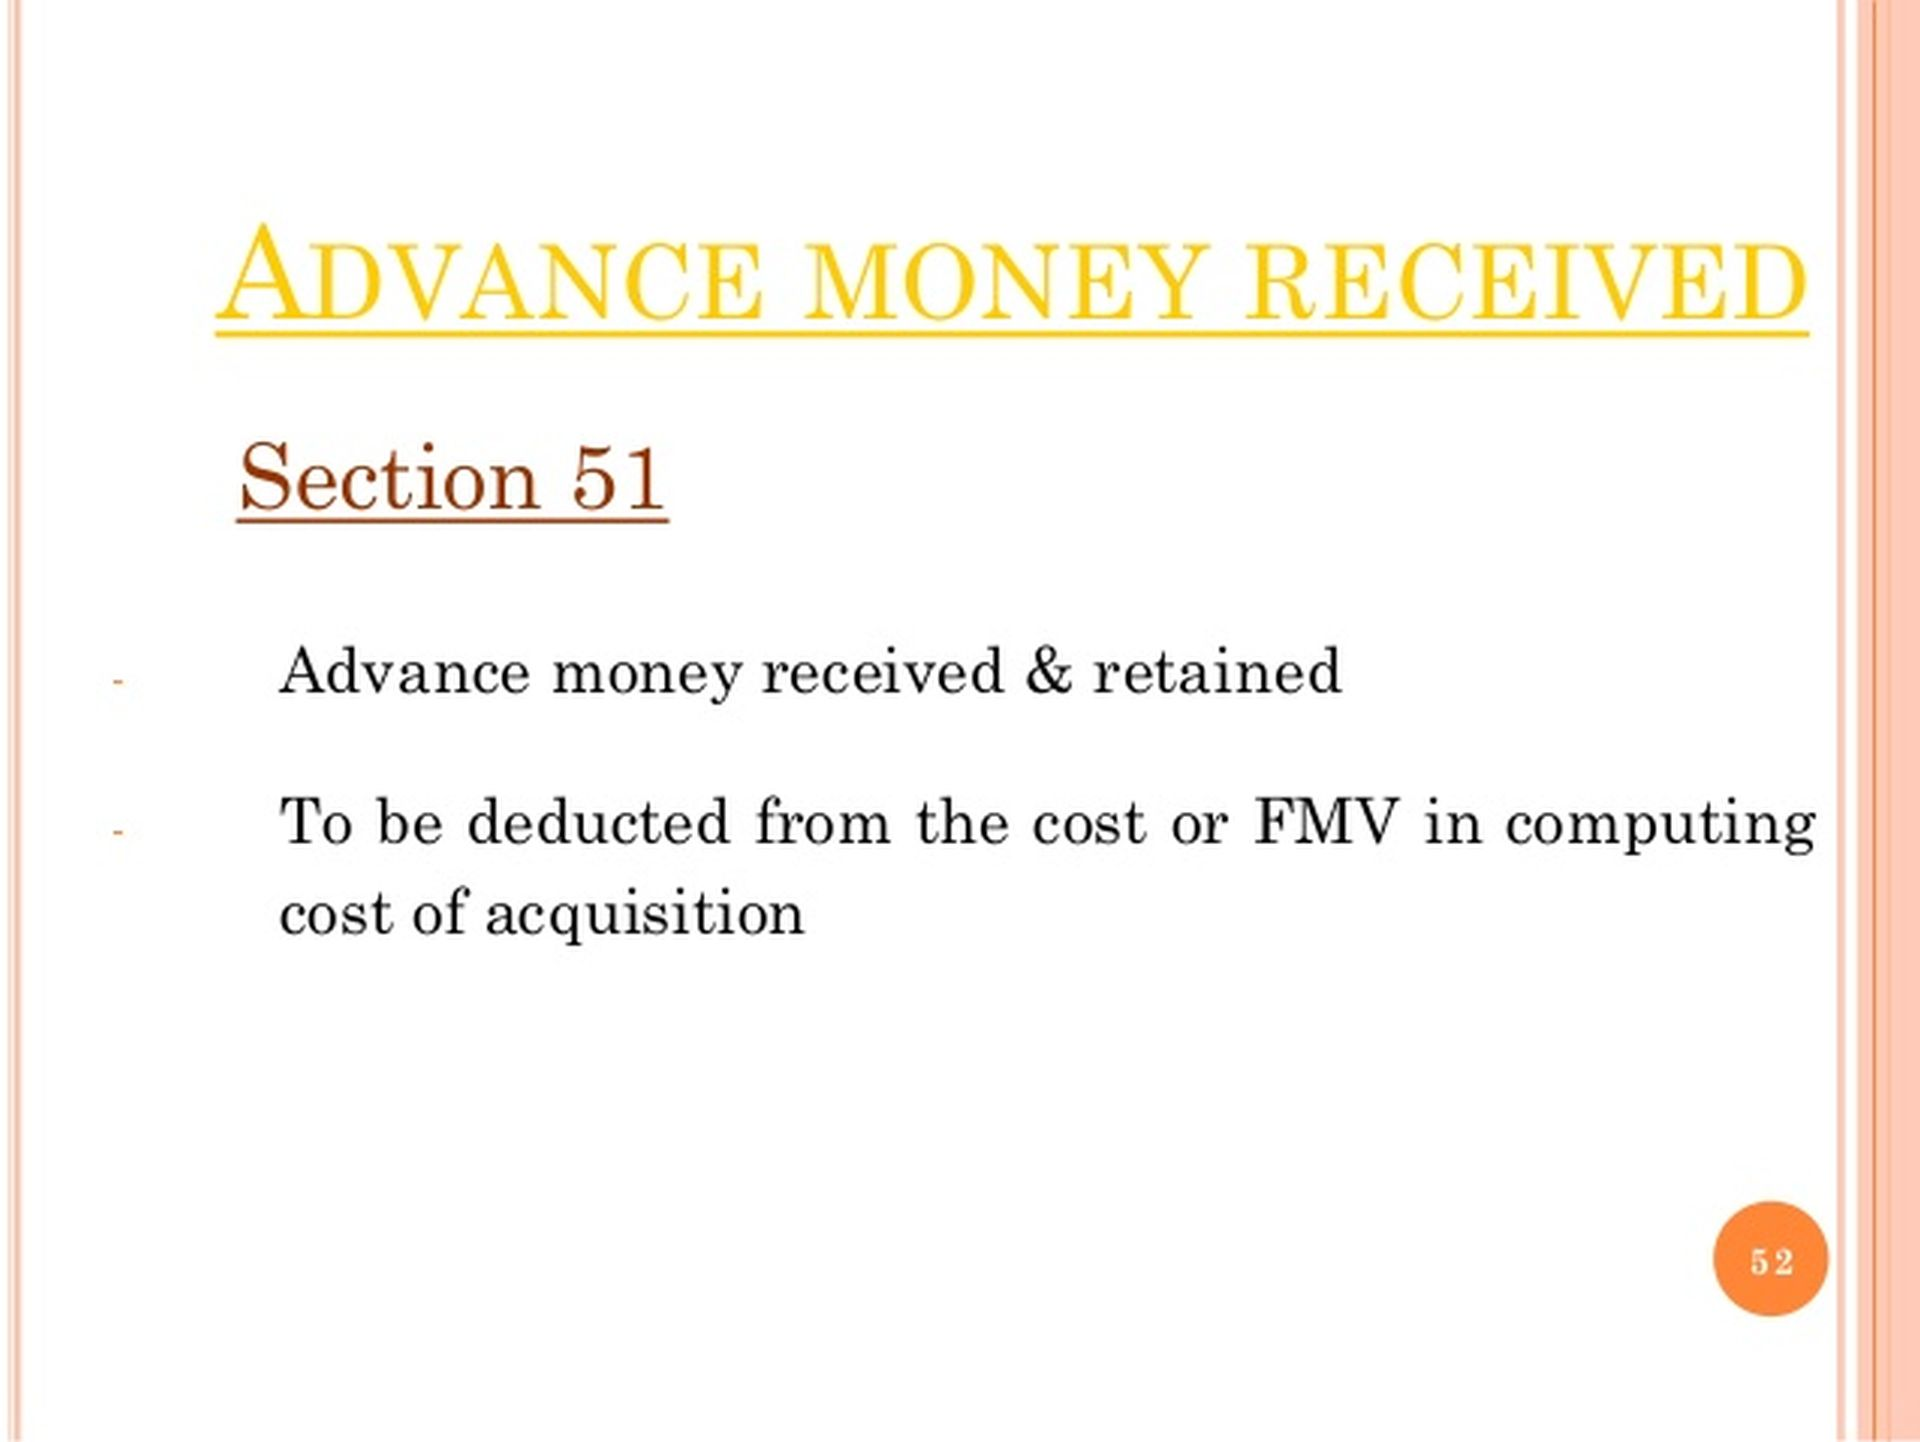 Section 51 of the Income Tax Act